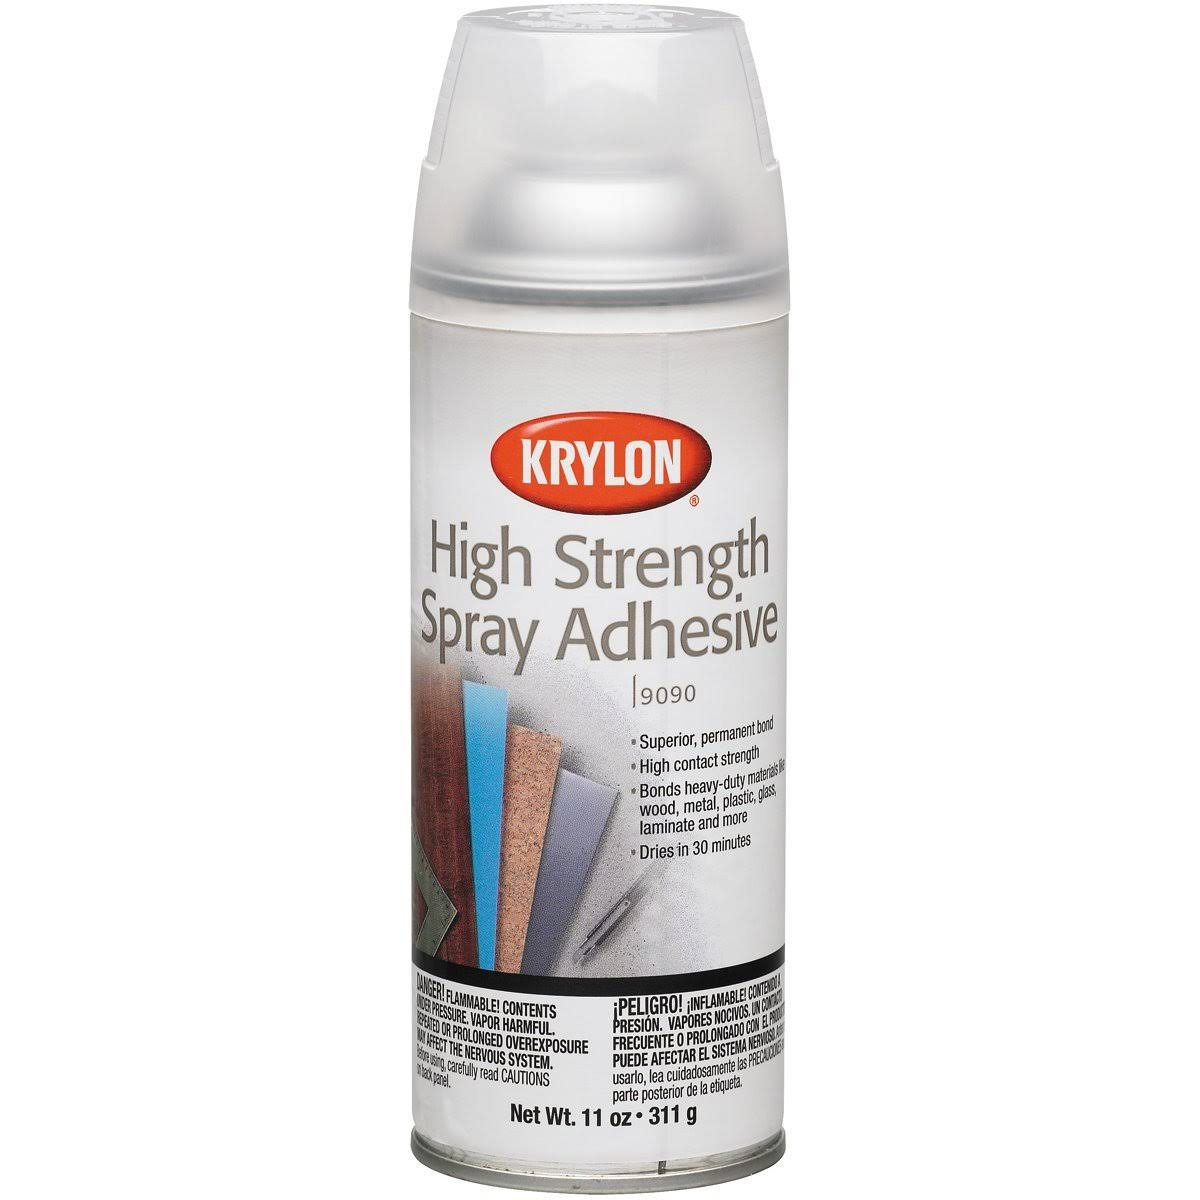 Krylon High Strength Spray Adhesive - 11oz